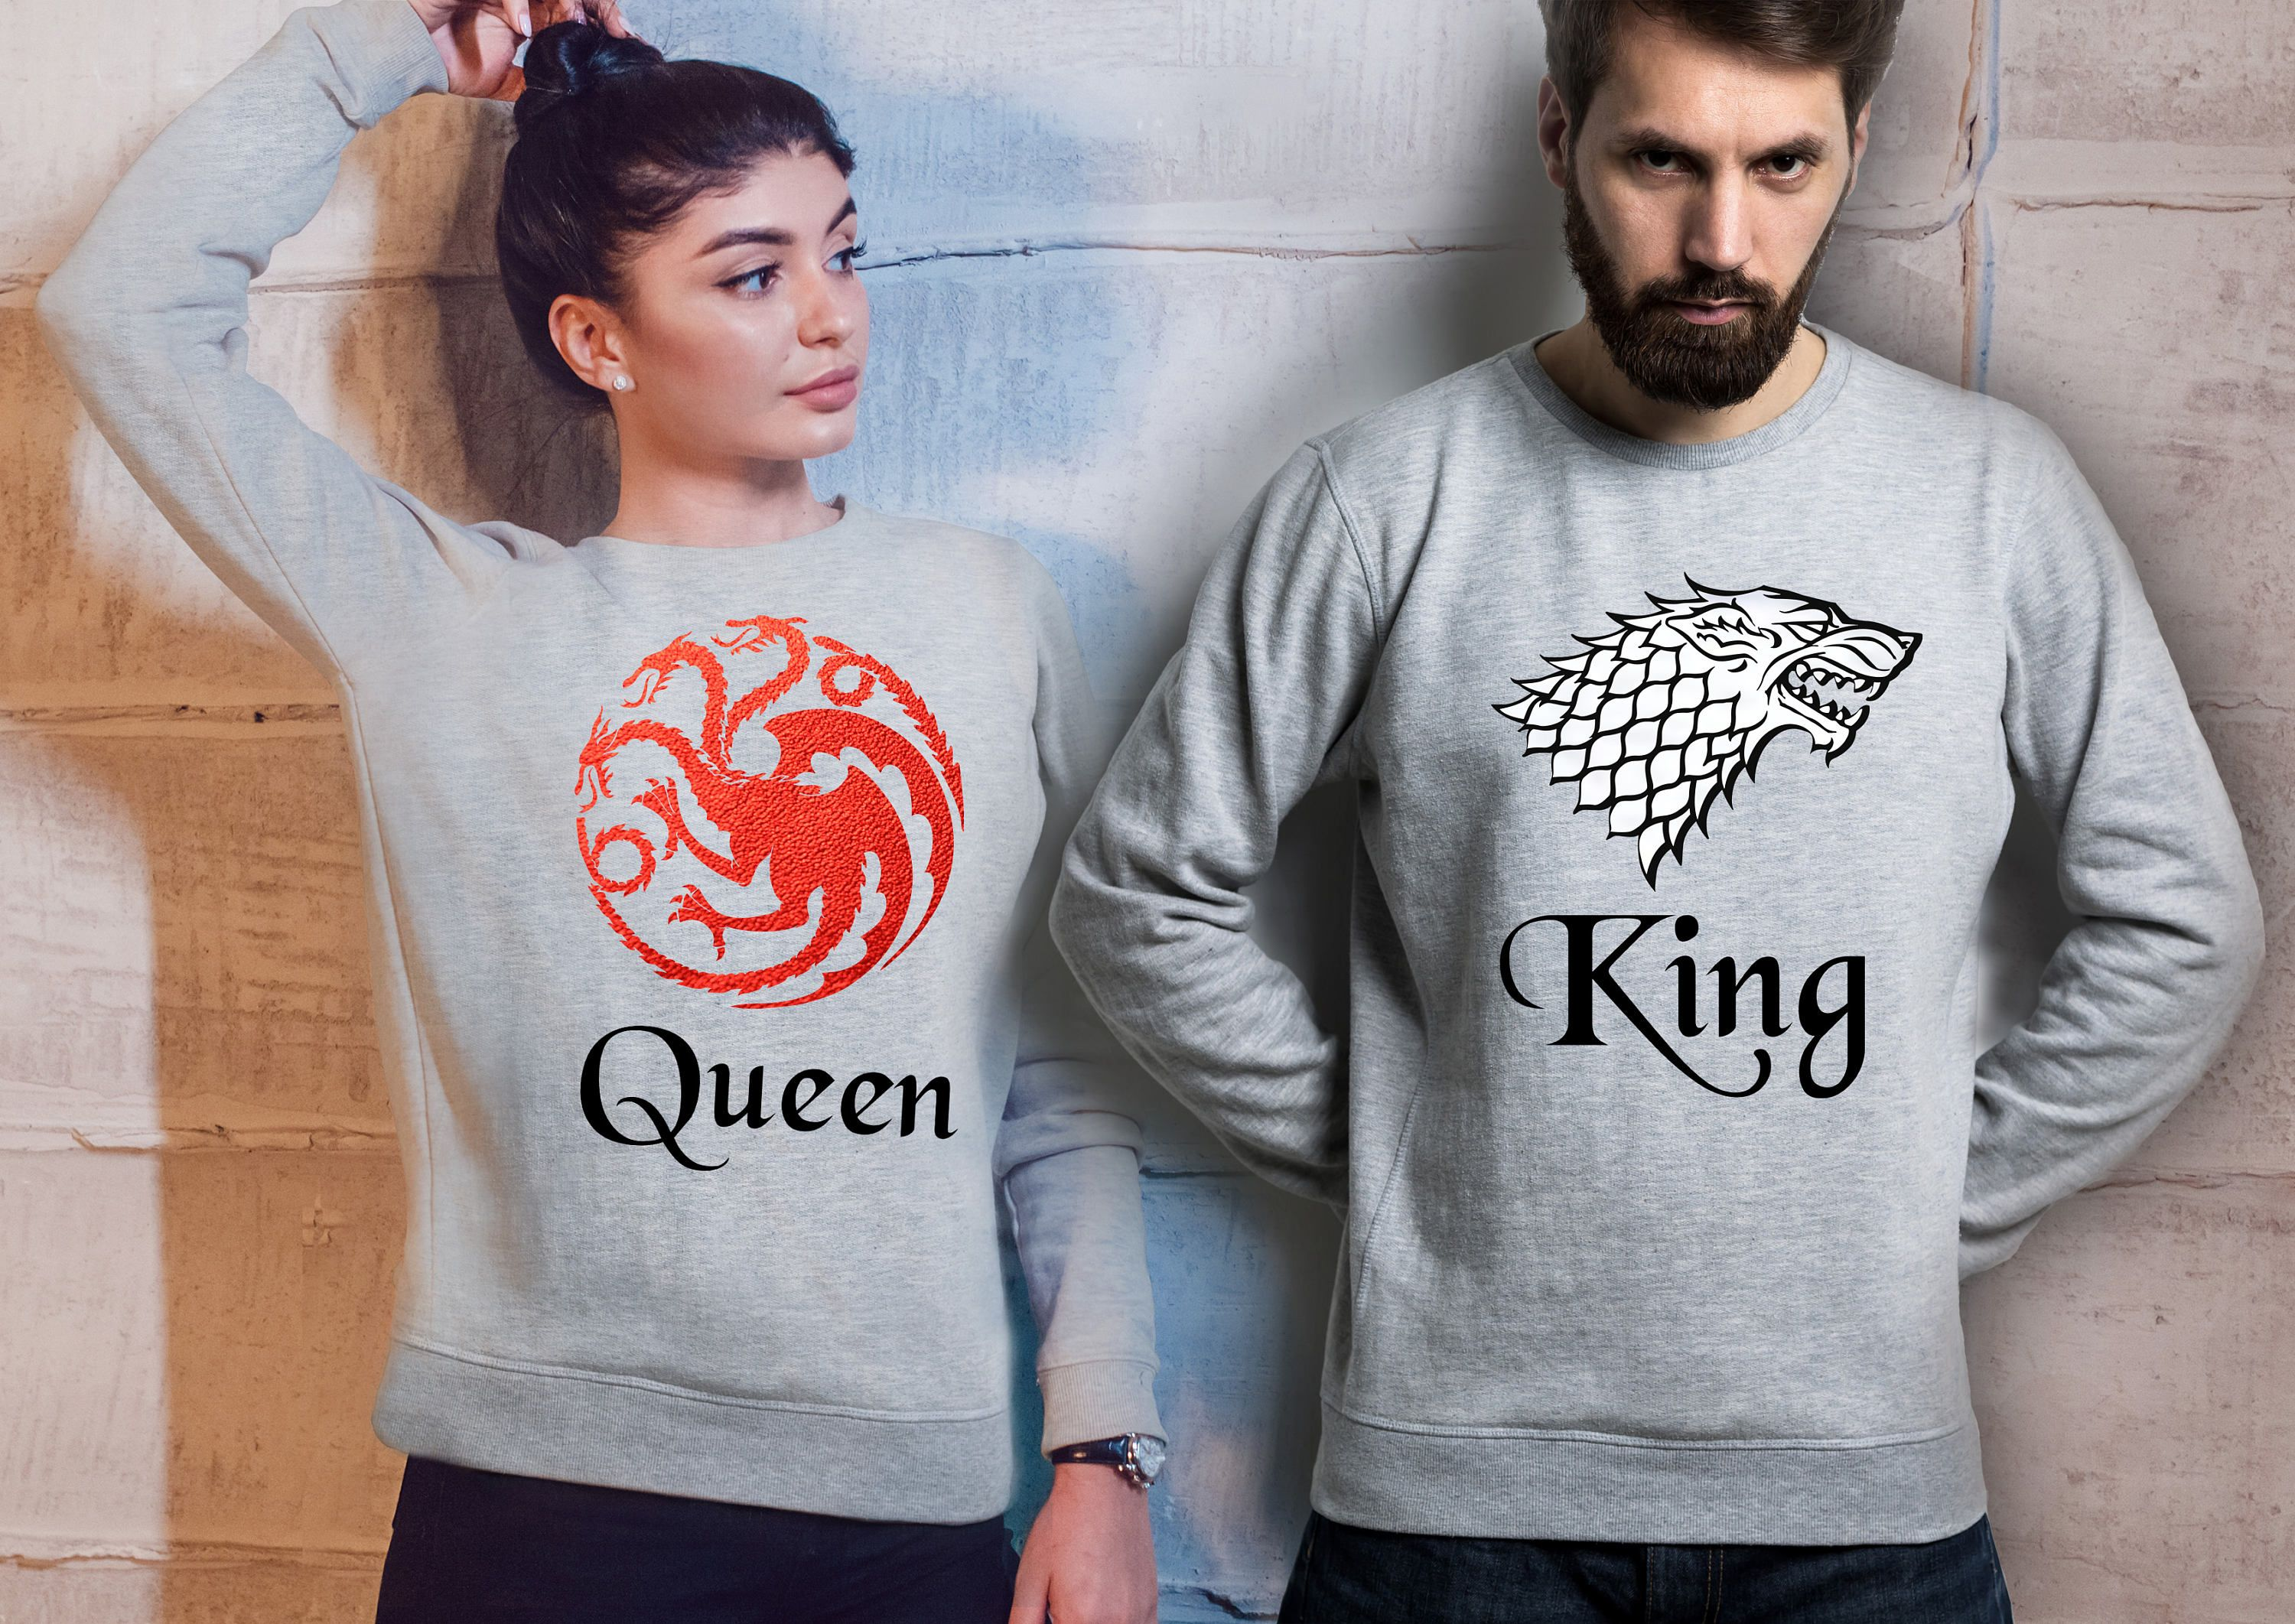 Targaryen and Stark king and Queen His and Her matching sport grey T-shirts set. yHLQGd